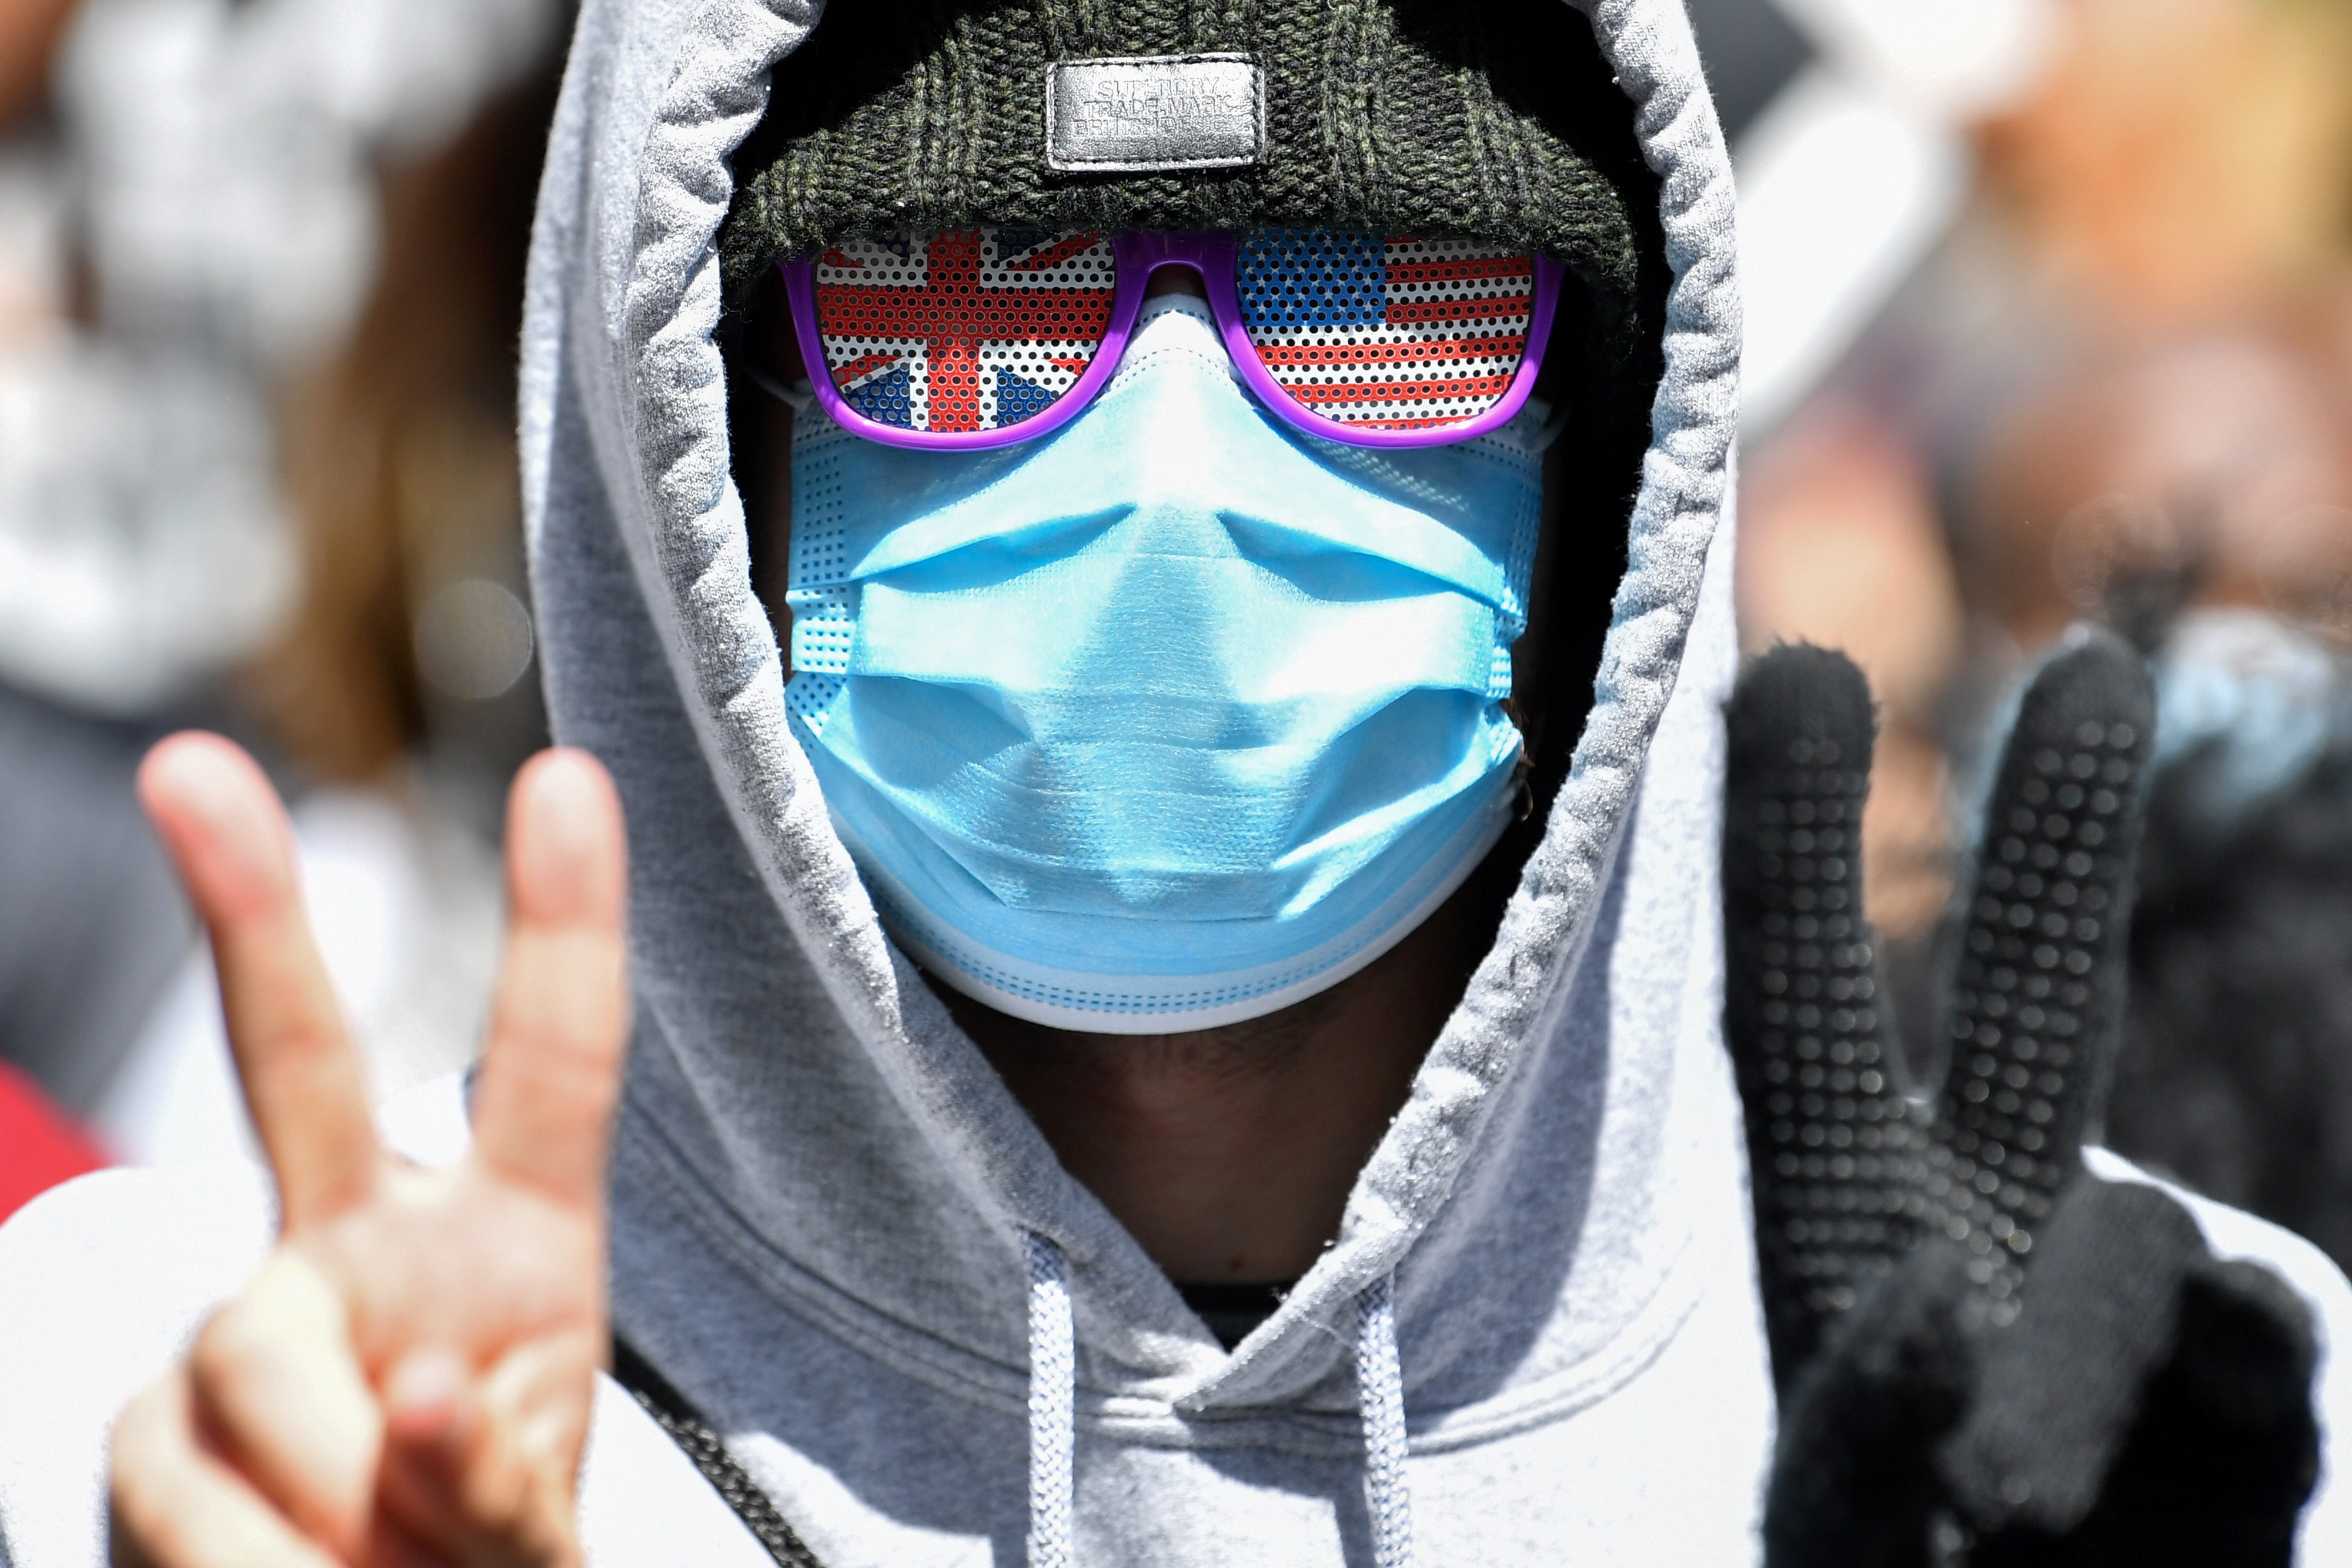 """A demonstrator, wearing PPE (personal protective equipment), including a face mask as a precautionary measure against COVID-19, and sunglasses themed on the Union and US flags, gestures during a protest march in Manchester, northern England, on June 6, 2020, to show solidarity with the Black Lives Matter movement in the wake of the killing of George Floyd, an unarmed black man who died after a police officer knelt on his neck in Minneapolis. - The United States braced Friday for massive weekend protests against racism and police brutality, as outrage soared over the latest law enforcement abuses against demonstrators that were caught on camera. With protests over last week's police killing of George Floyd, an unarmed black man, surging into a second weekend, President Donald Trump sparked fresh controversy by saying it was a """"great day"""" for Floyd. (Photo by Paul ELLIS / AFP) (Photo by PAUL ELLIS/AFP via Getty Images)"""